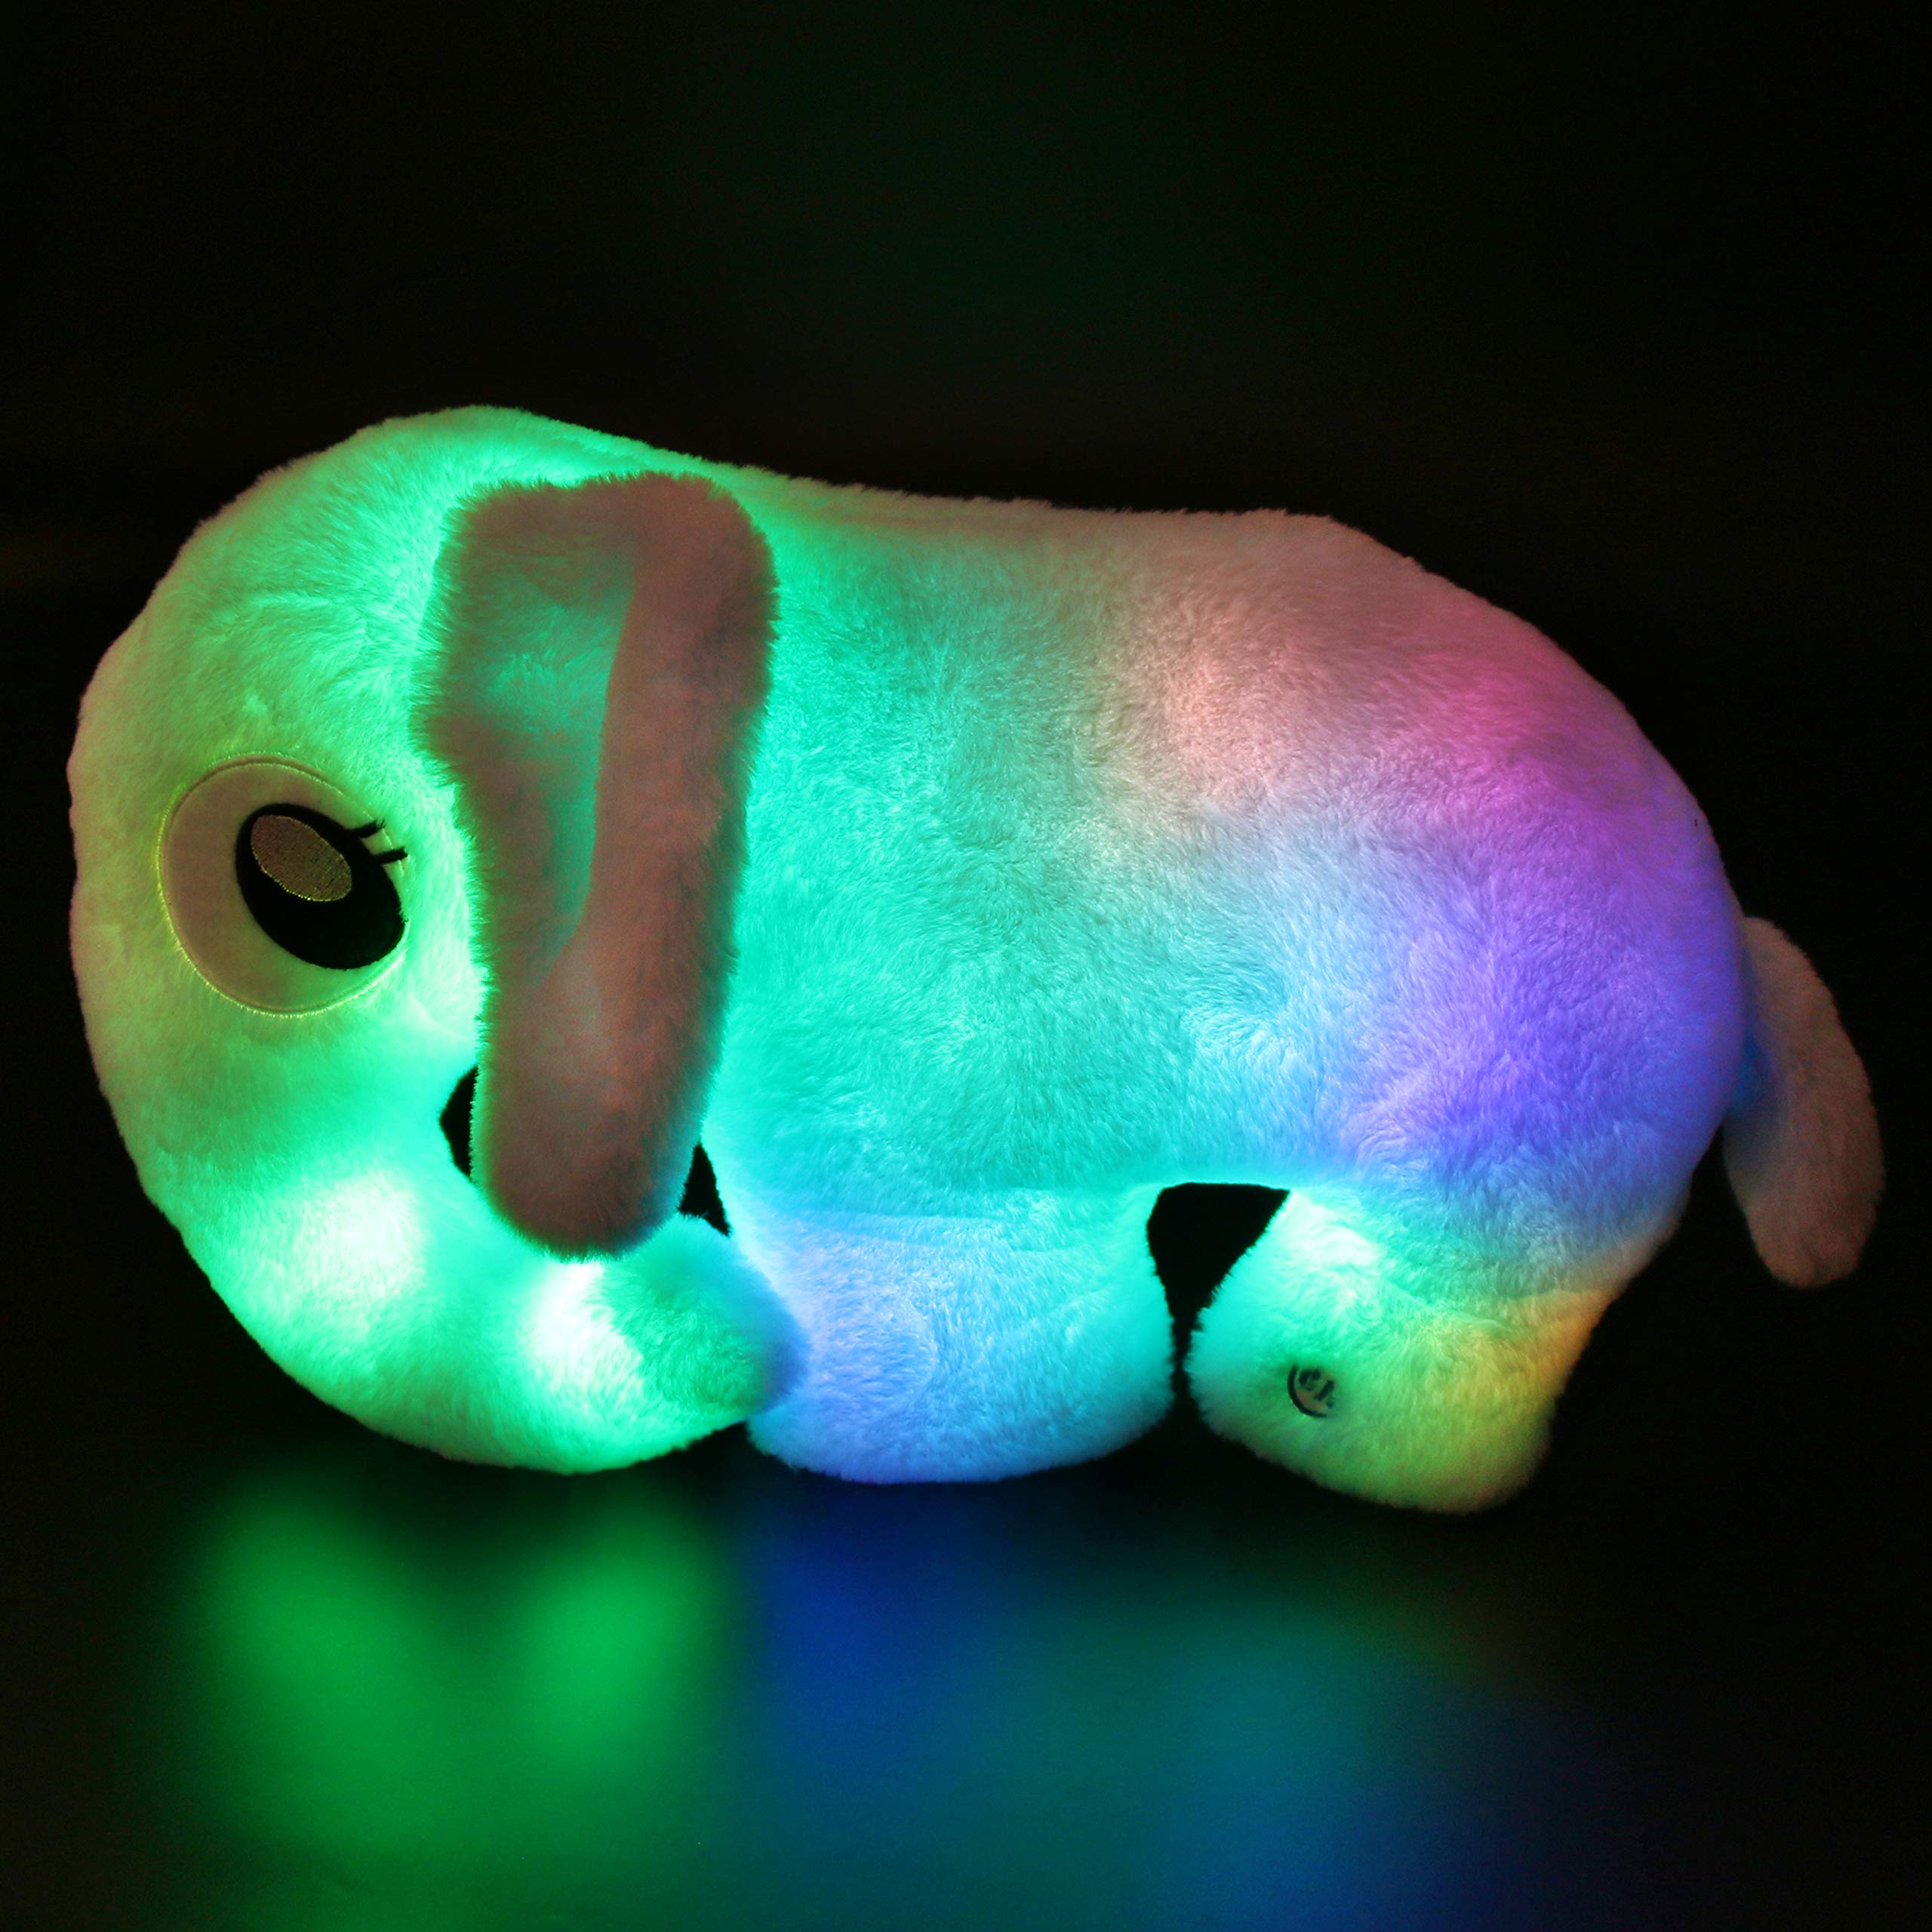 Houwsbaby Light UP Elephant Stuffed Animal Soft Plush Toy Glow in Dark LED Cushion Pillow Hugging Companion Pet Gift for Kids, Blue, 18 inches by Houwsbaby